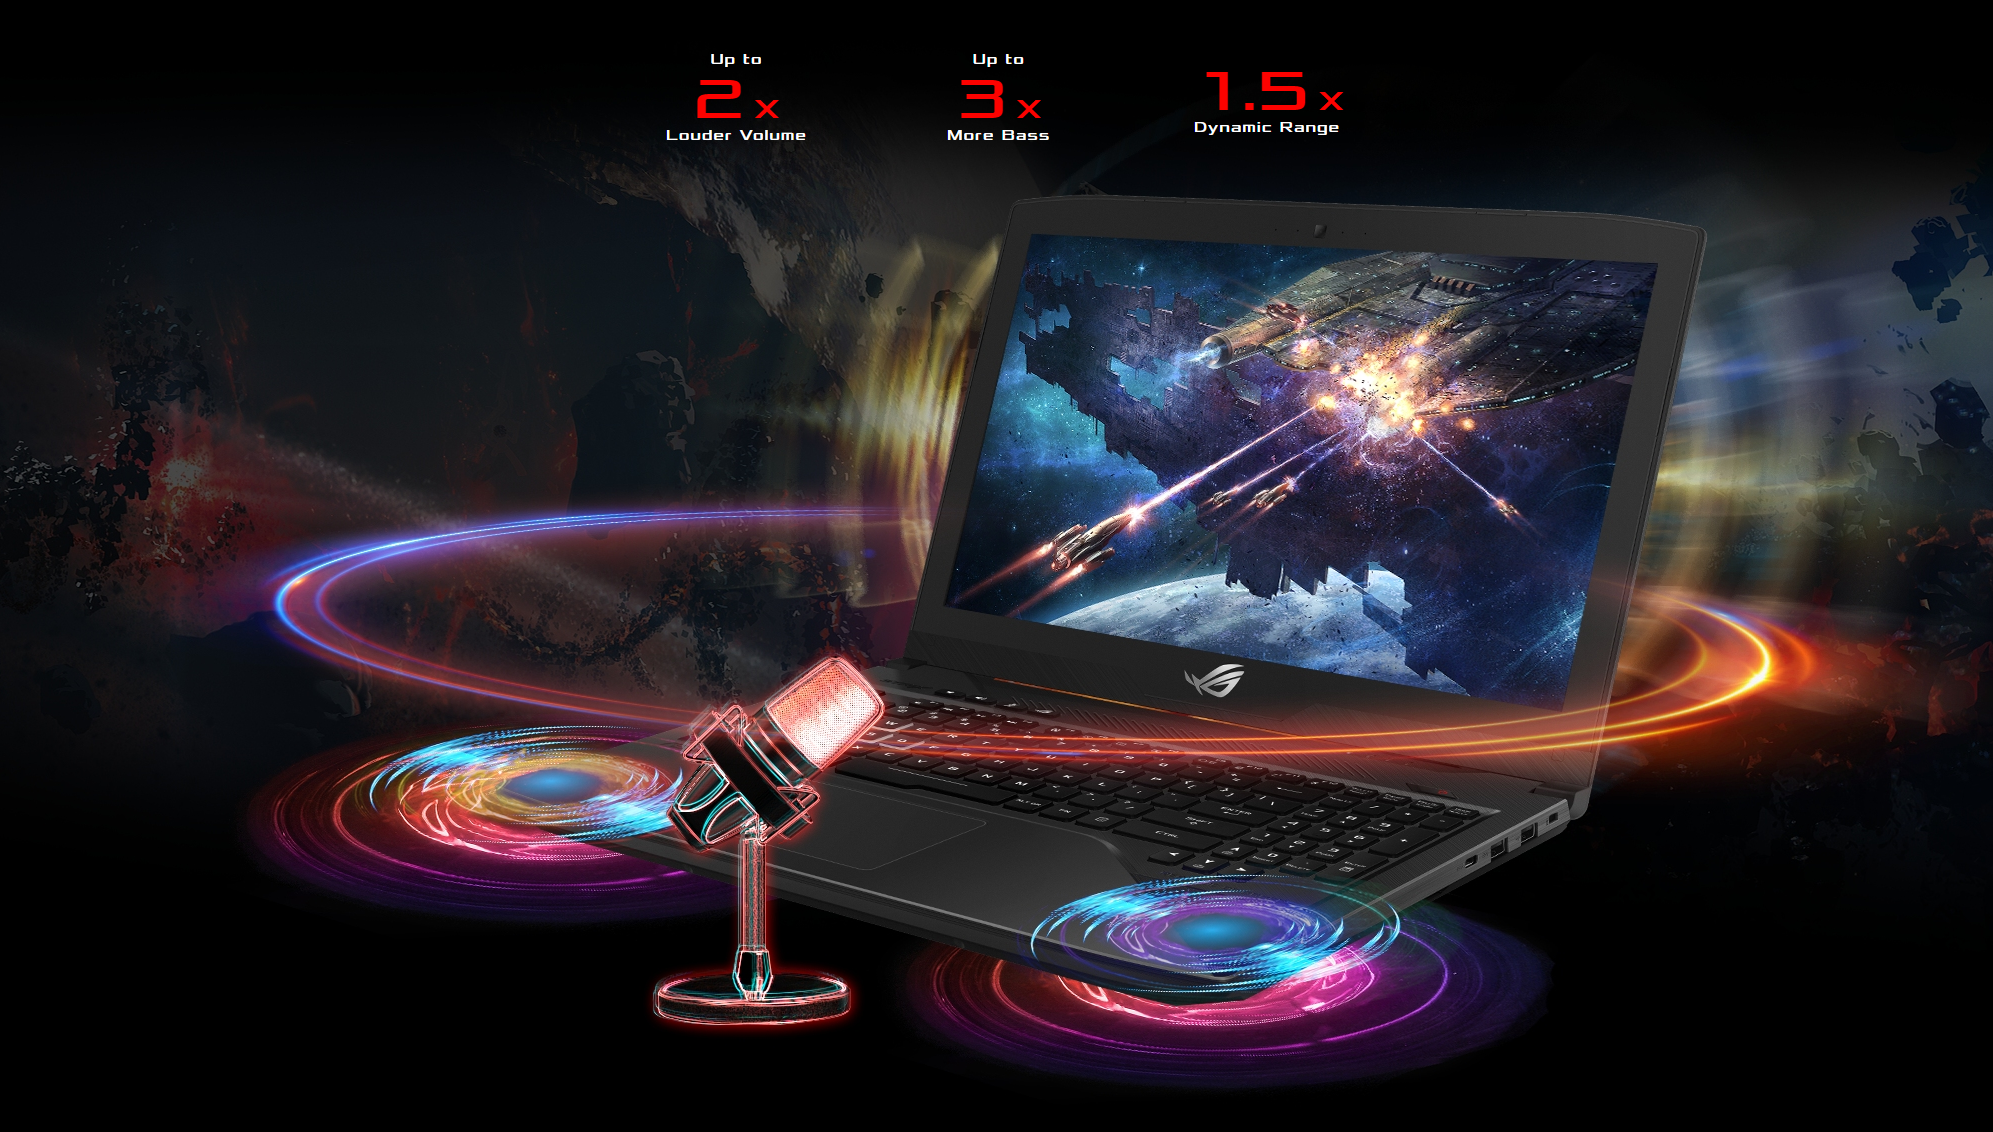 Asus ROG Strix SCAR GL503GE-EN021T Core i7-8750H 8GB 128GB SSD + 1TB HDD GeForce GTX 1050Ti 15.6 FHD Windows 10